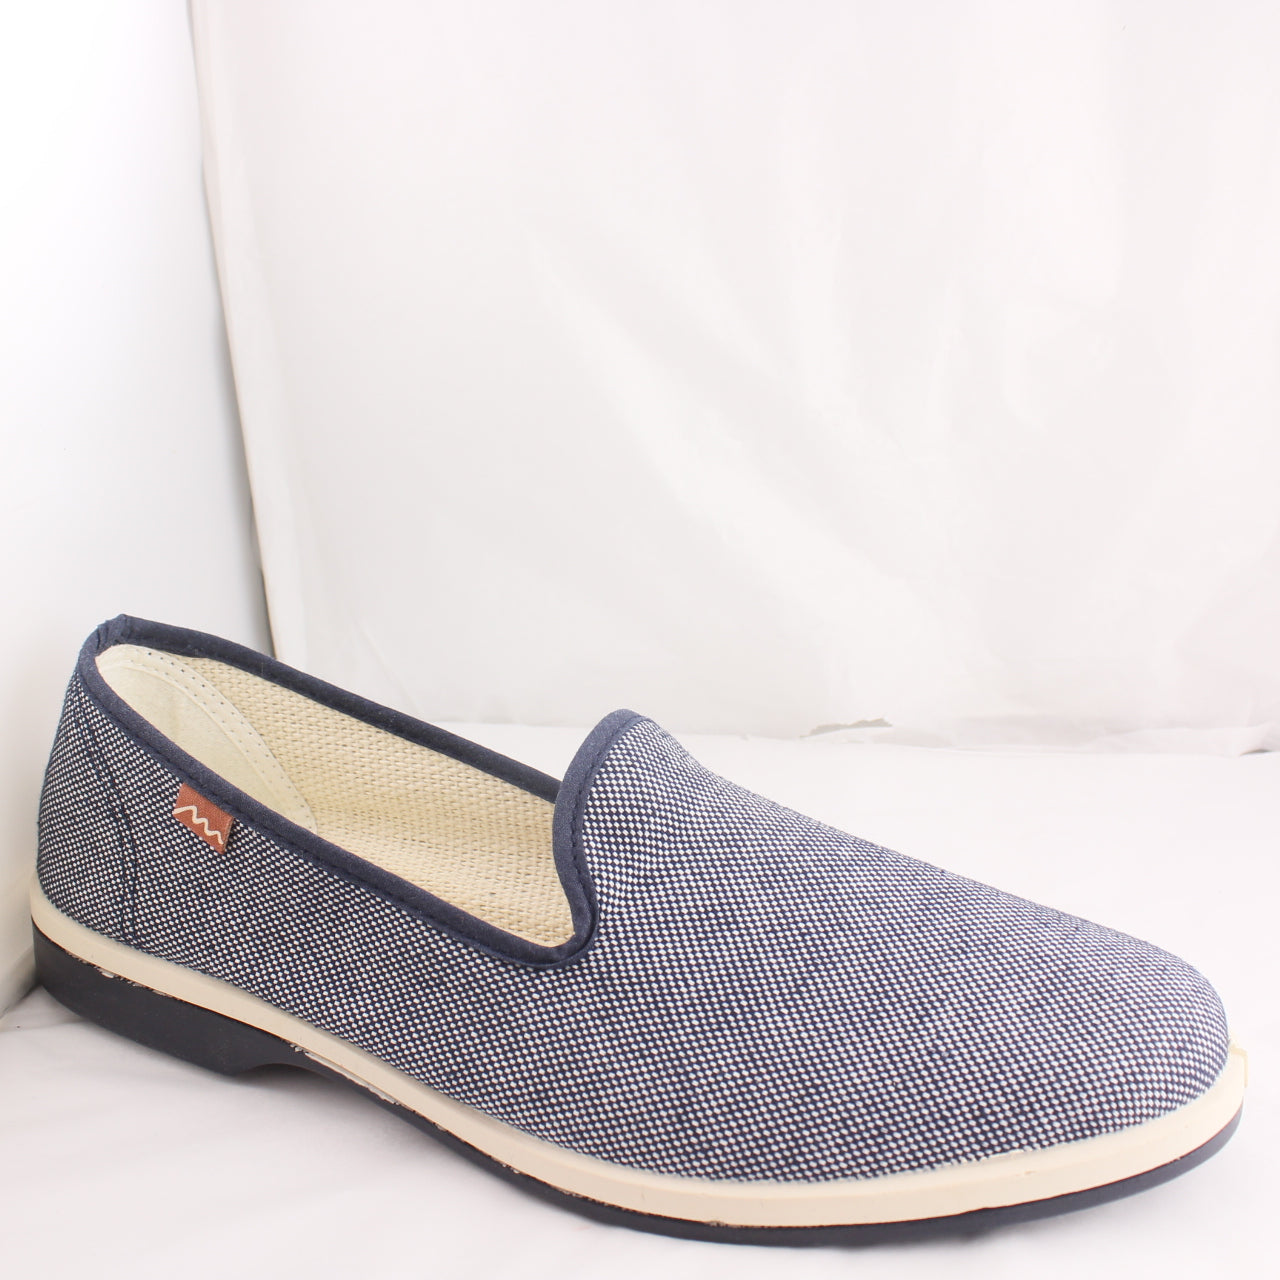 Mens Maians Slip On Blue Casual Shoes Size 7.5